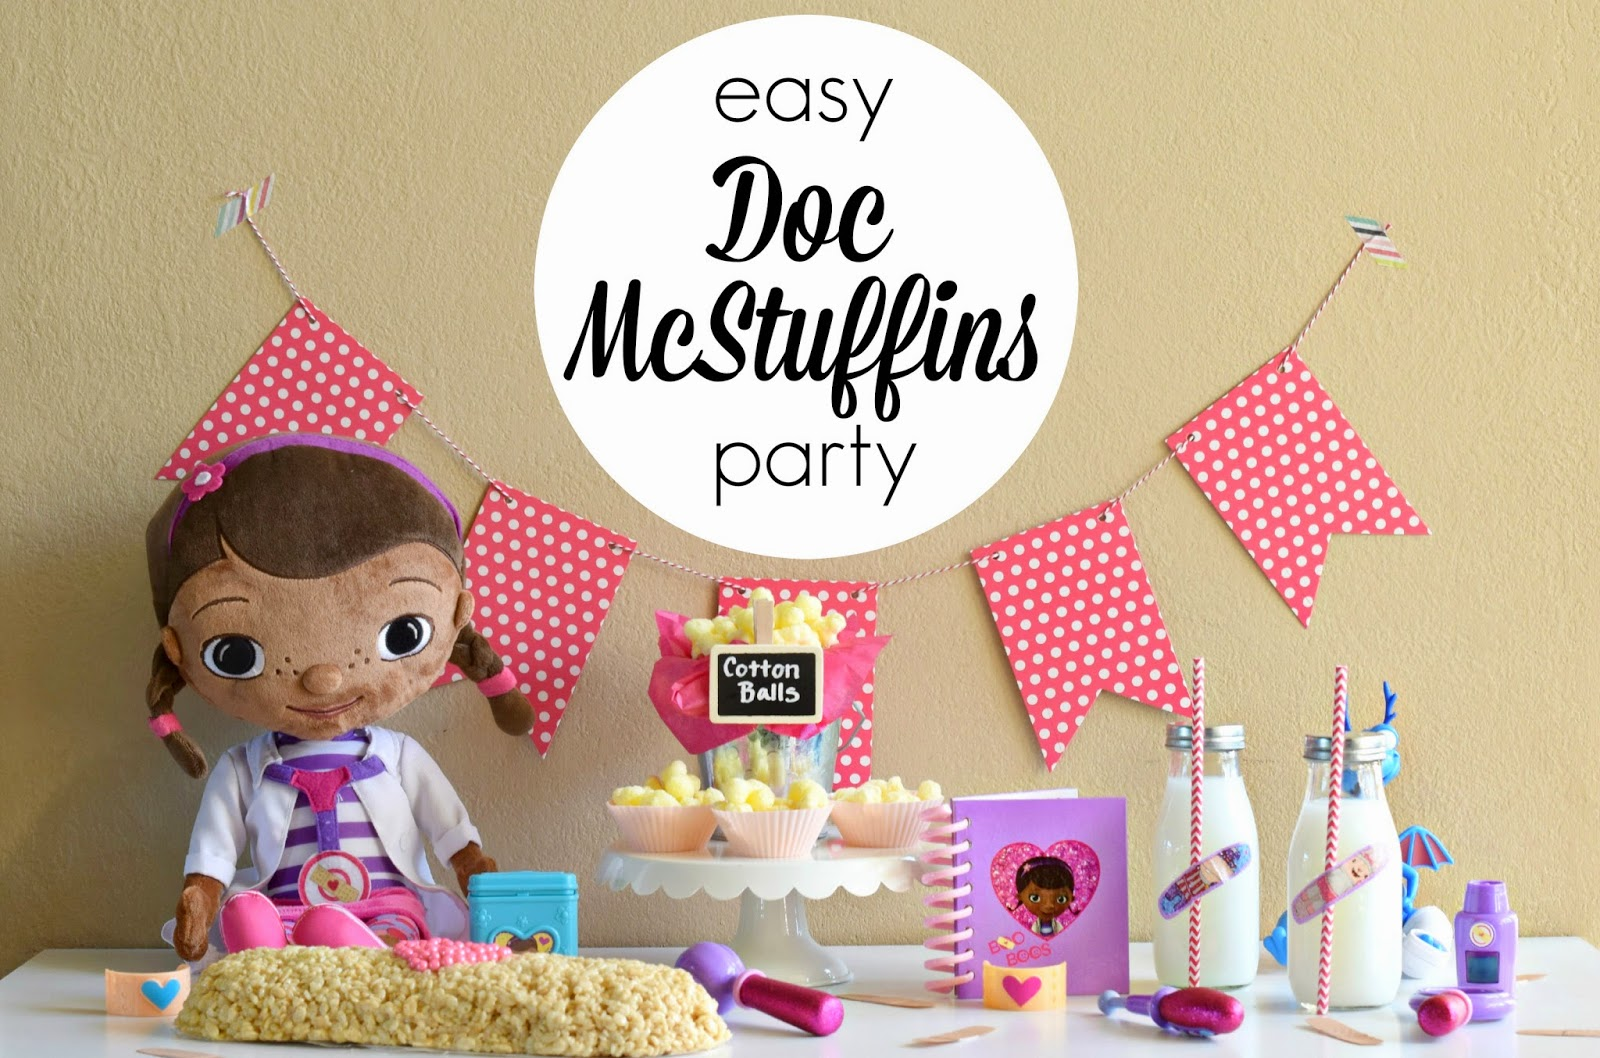 Mommy Testers, Doc McStuffins Party, Doc McStuffins cake, Band Aid cake, Doc McStuffins bandage cake, Doc McStuffins slumber party #shop #juniorcelebrates